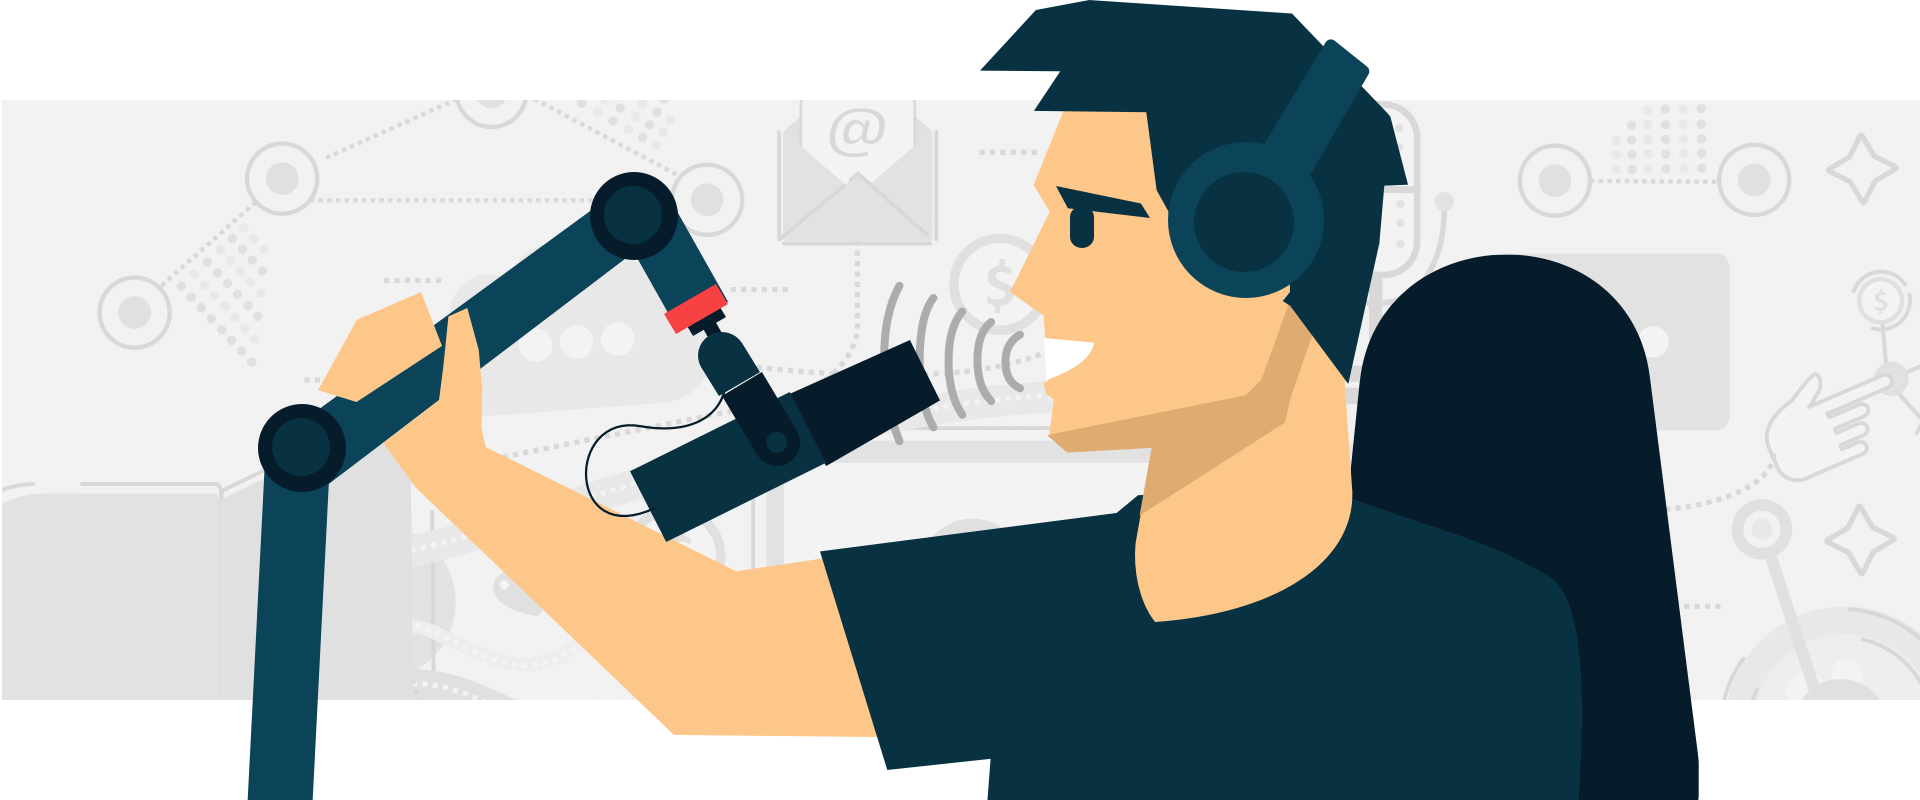 Podcaster displaying microphone technique